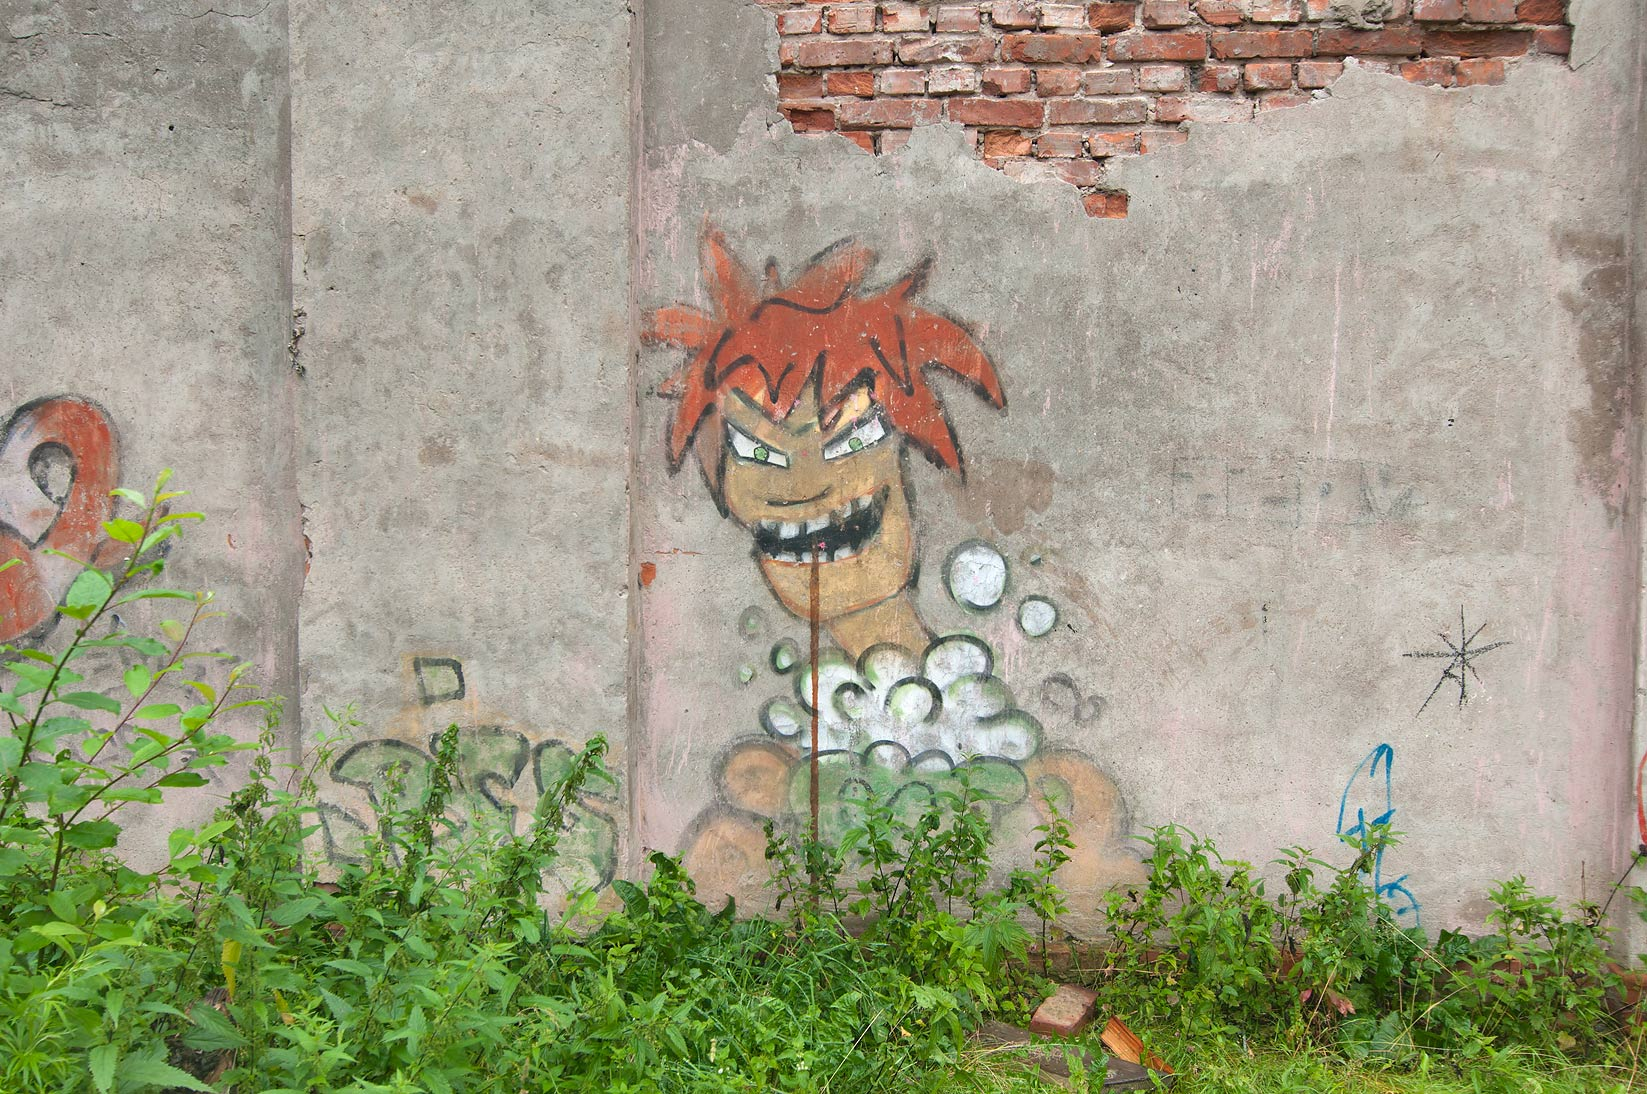 Graffiti near children's playground near...in Kronstadt. St.Petersburg, Russia